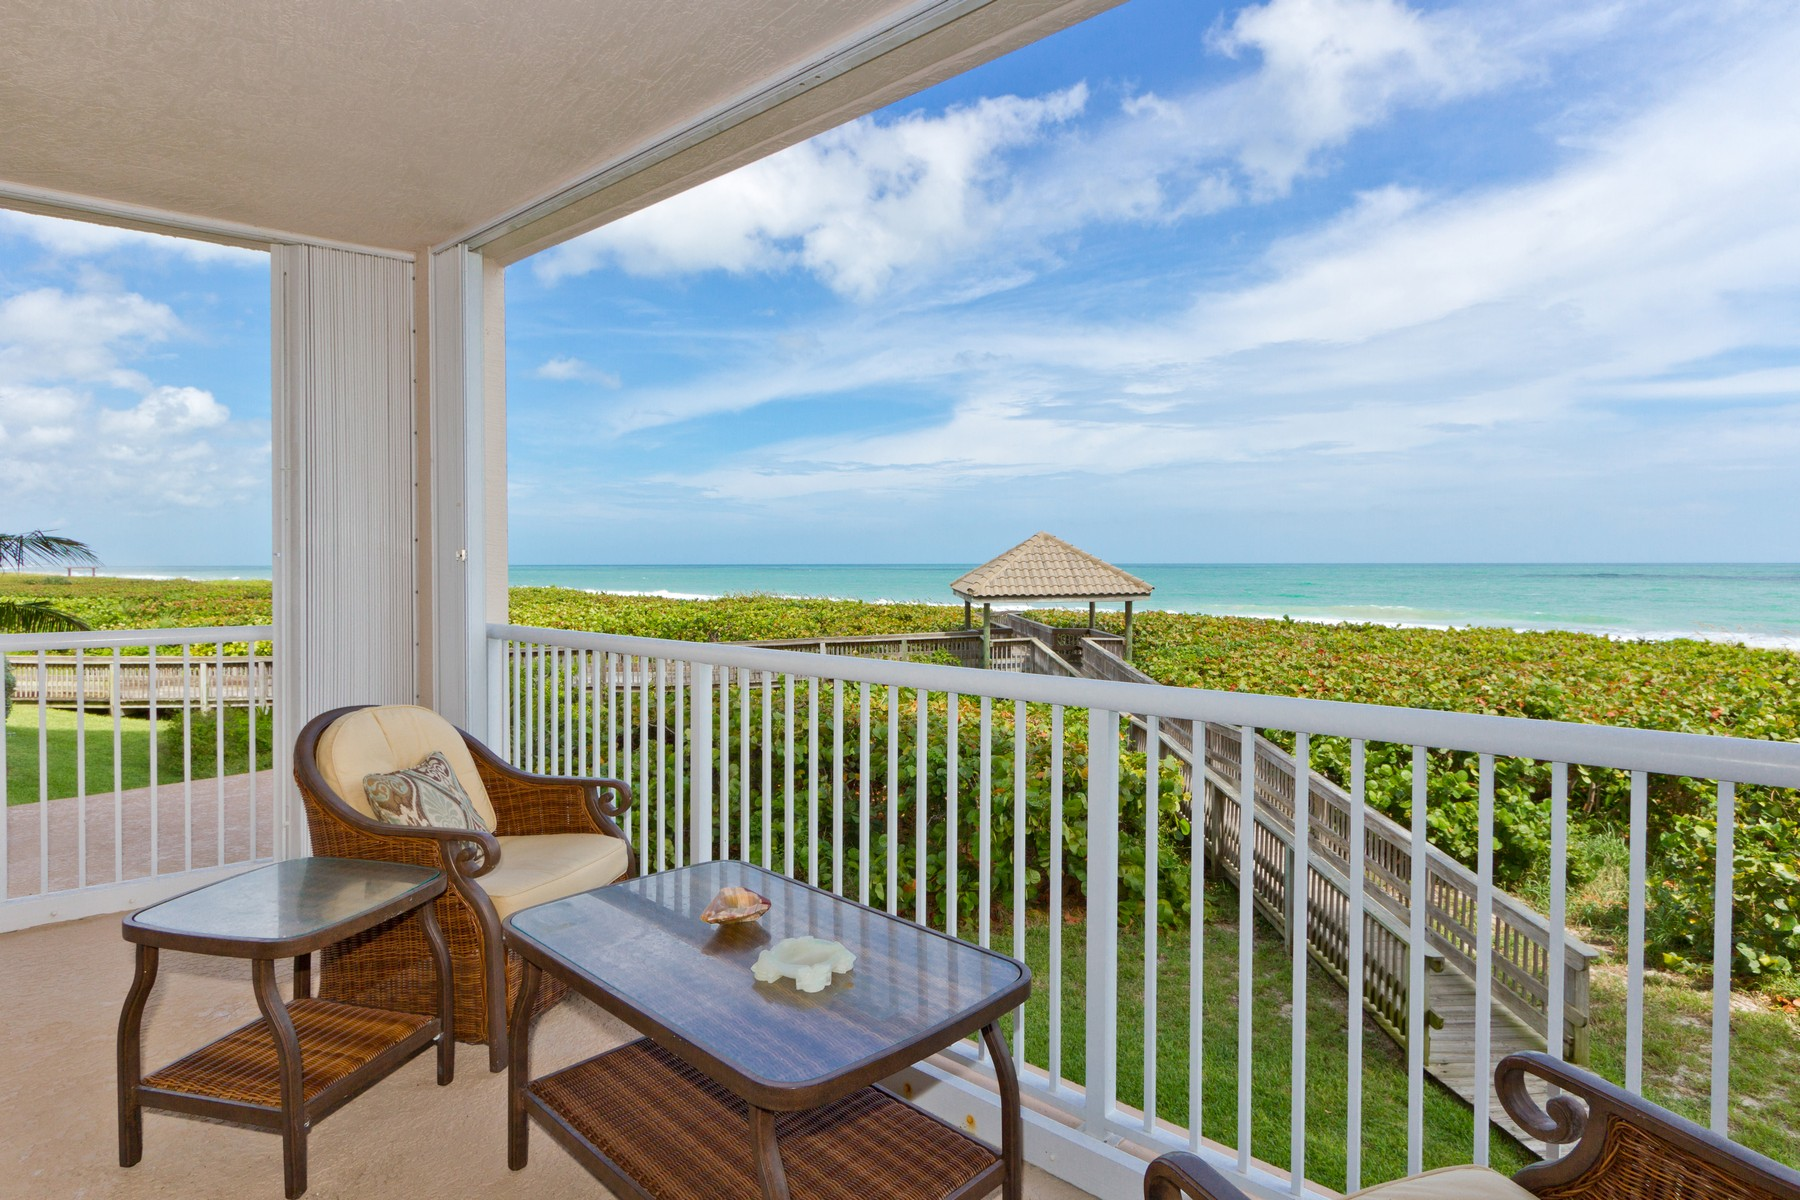 Breathe in Sweeping Turquoise Ocean Views from the Wrap-Around Balcony 4160 N Highway A1A #201A Hutchinson Island, Florida 34949 Usa